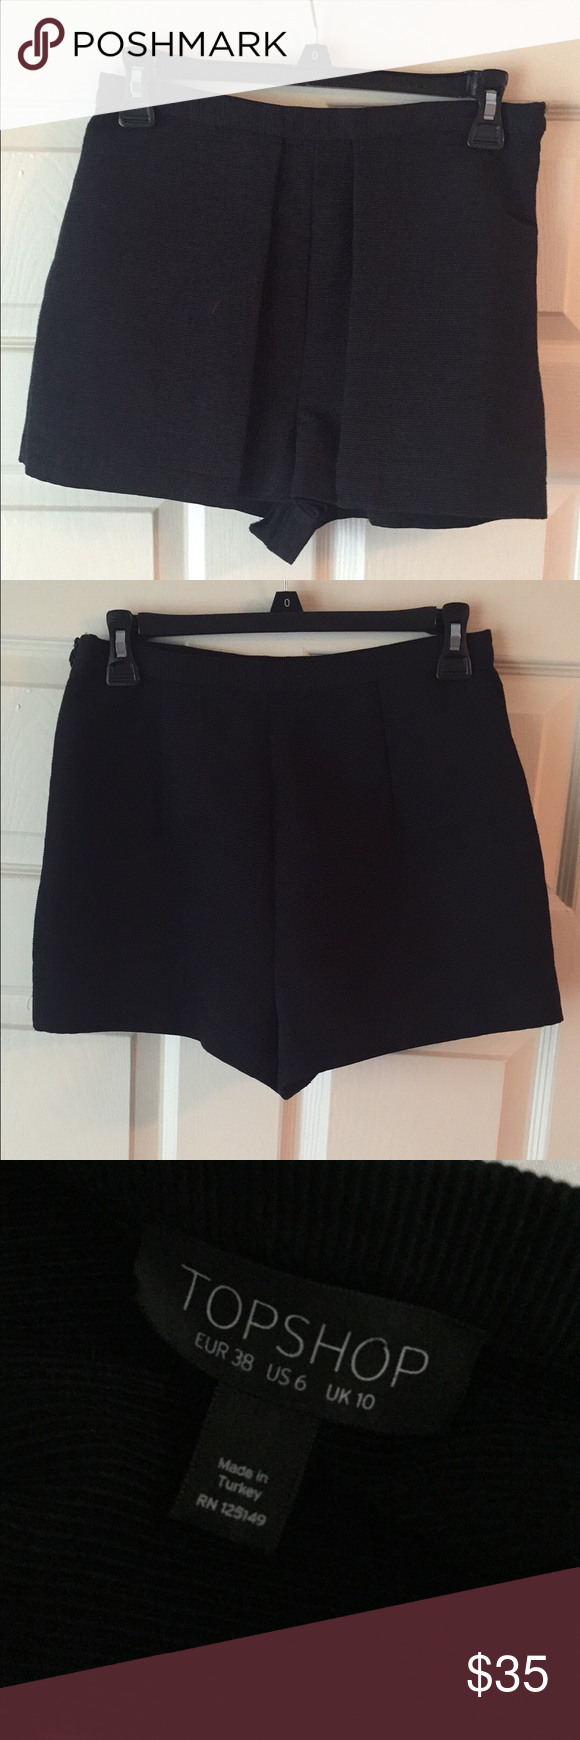 Topshop Shorts US Size 6 Worn once and look brand new! Women's Topshop shorts US size 6. Side zipper closure. Have flaps on front. High waisted fit. Topshop Shorts